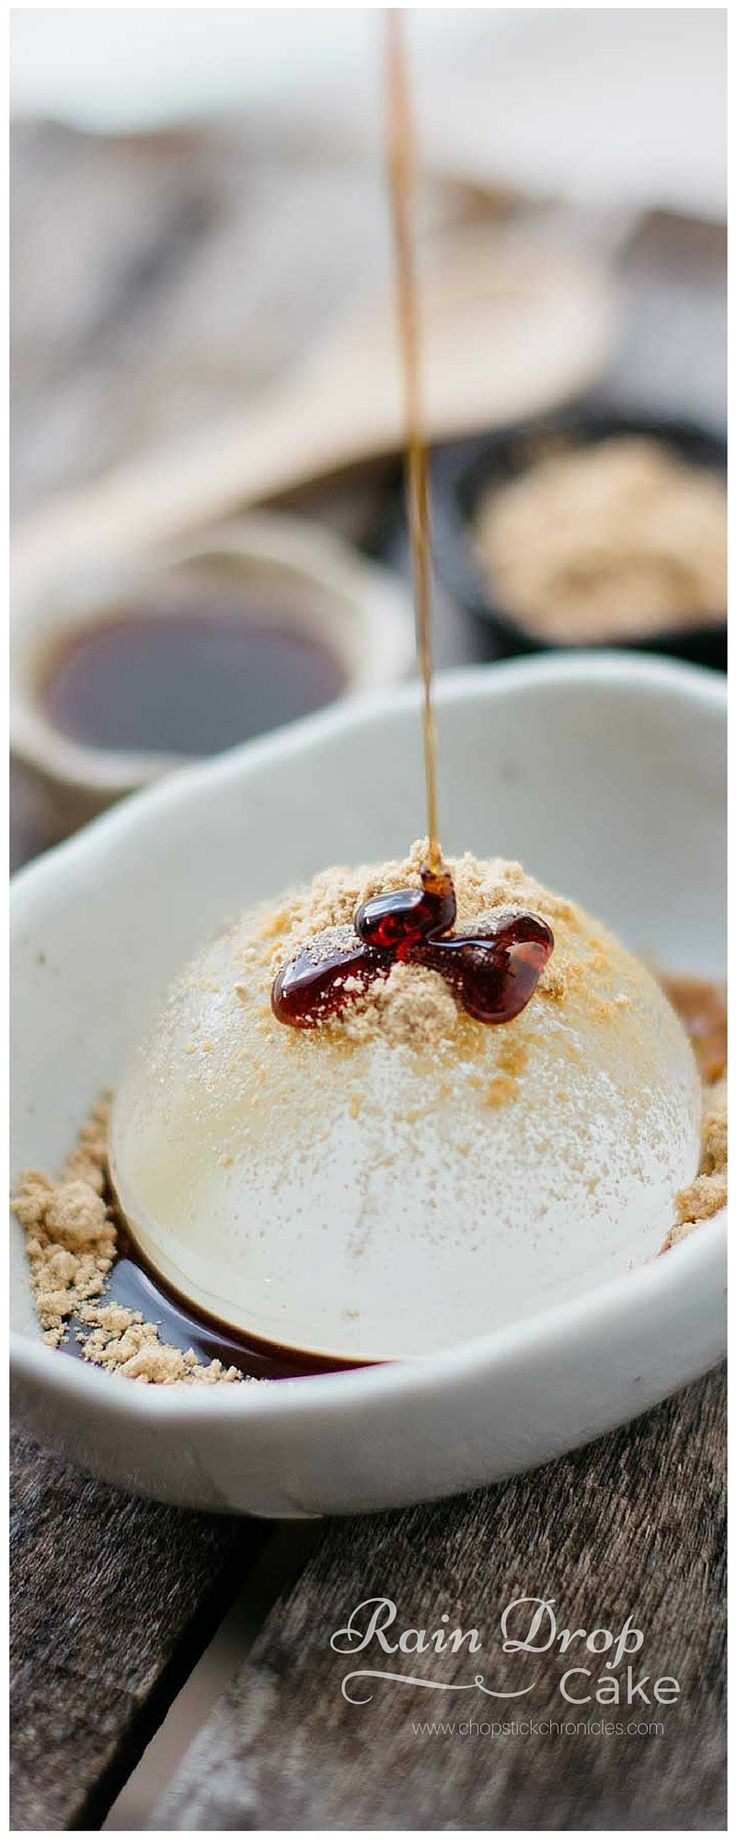 Rain Drop Cake is a super popular Japanese dessert and low in calories